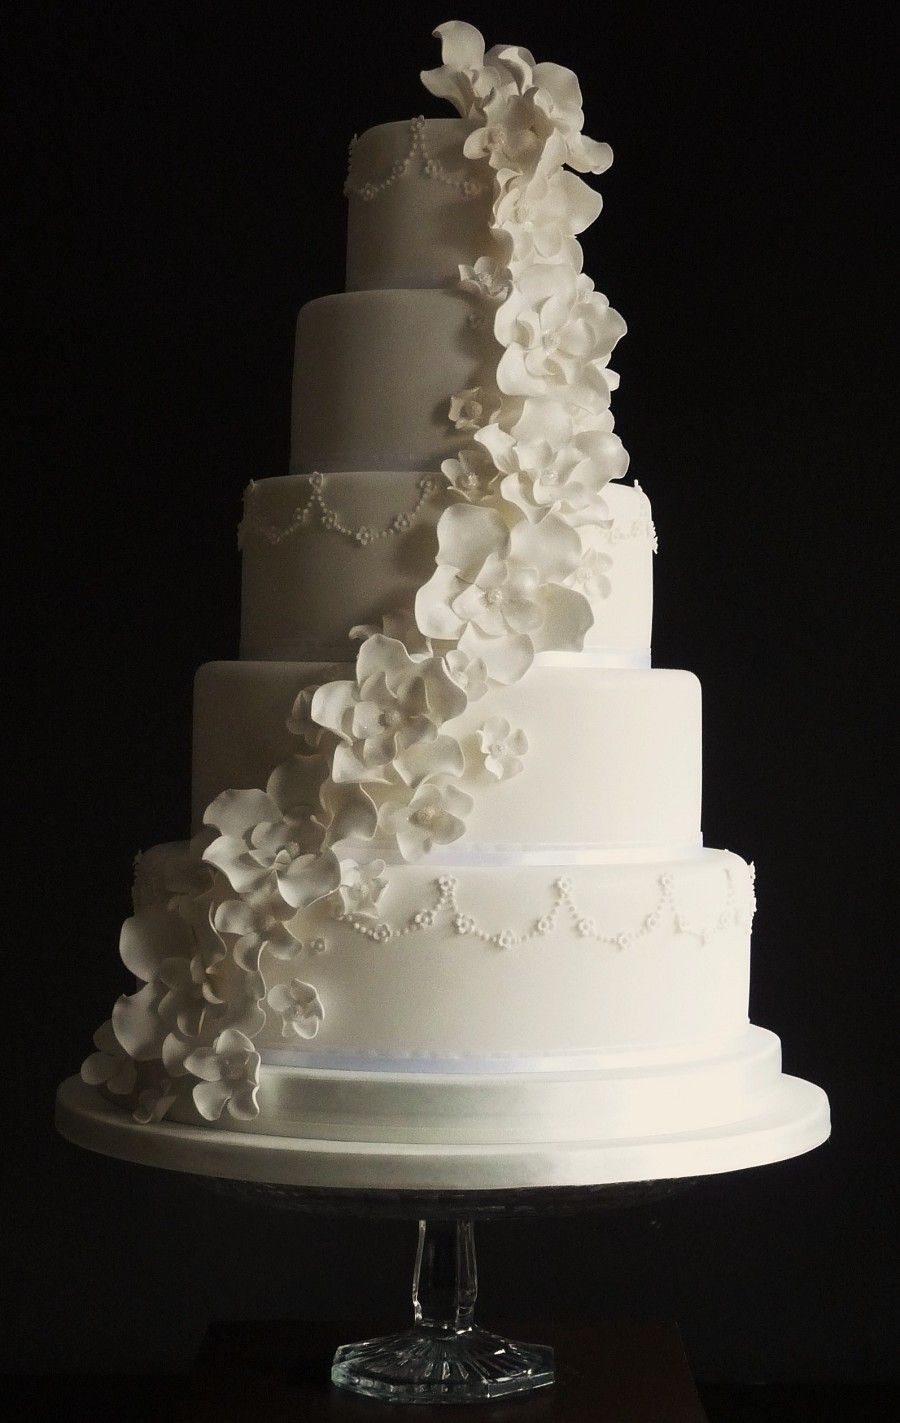 This Is Pretty Much My Dream Wedding Cake Except That Im Old